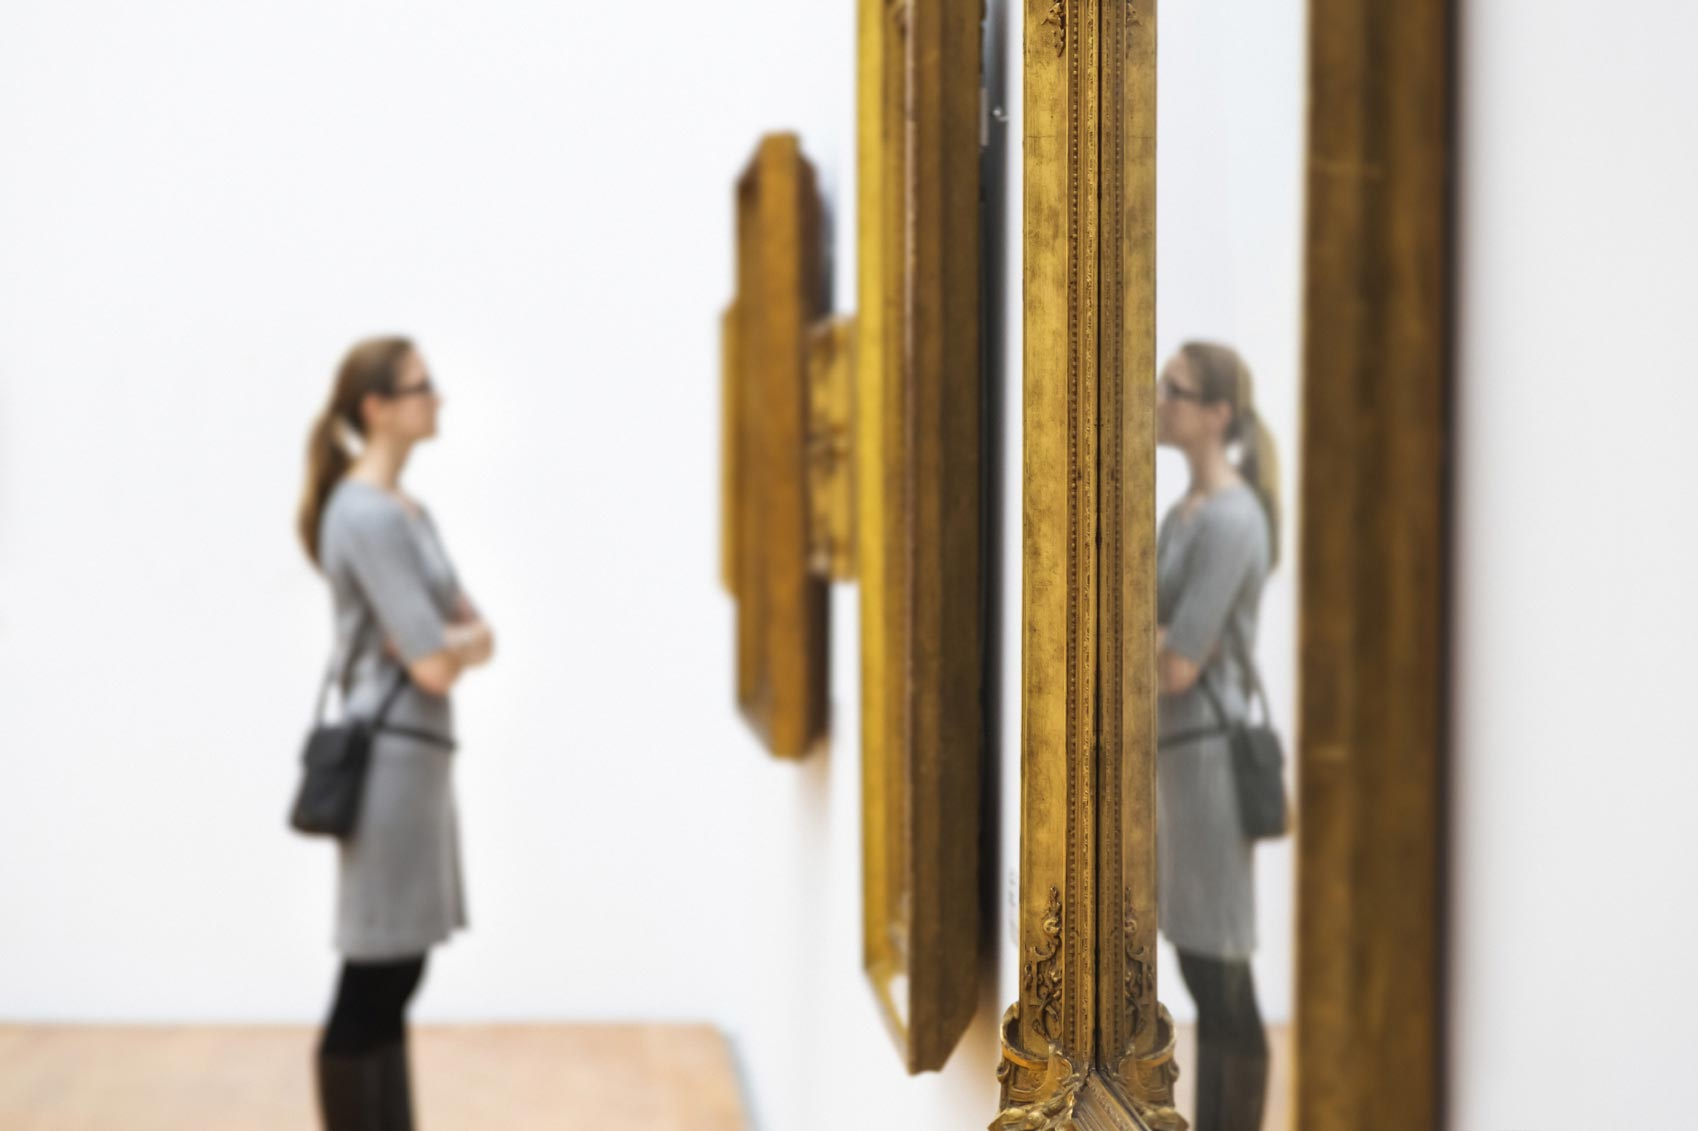 Visiting a peaceful museum or gallery